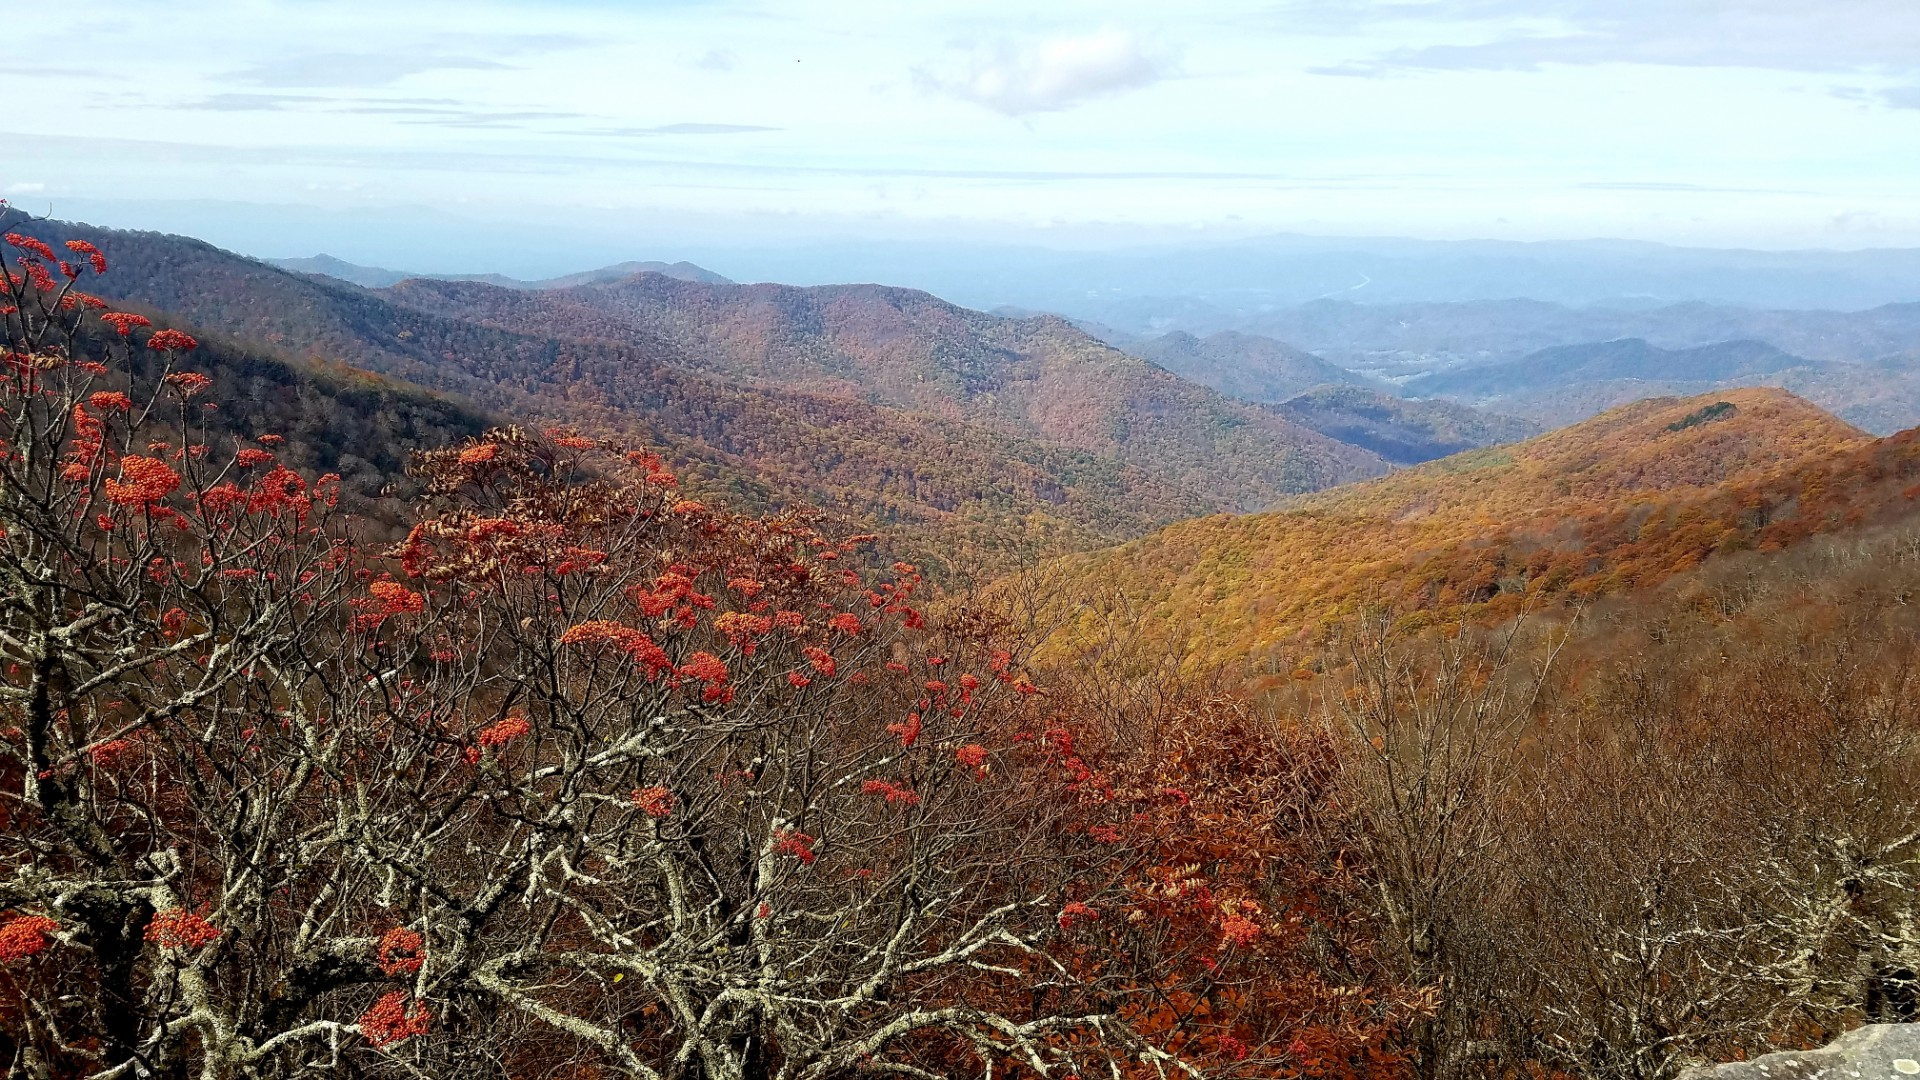 views of several mountain ranges in the fall